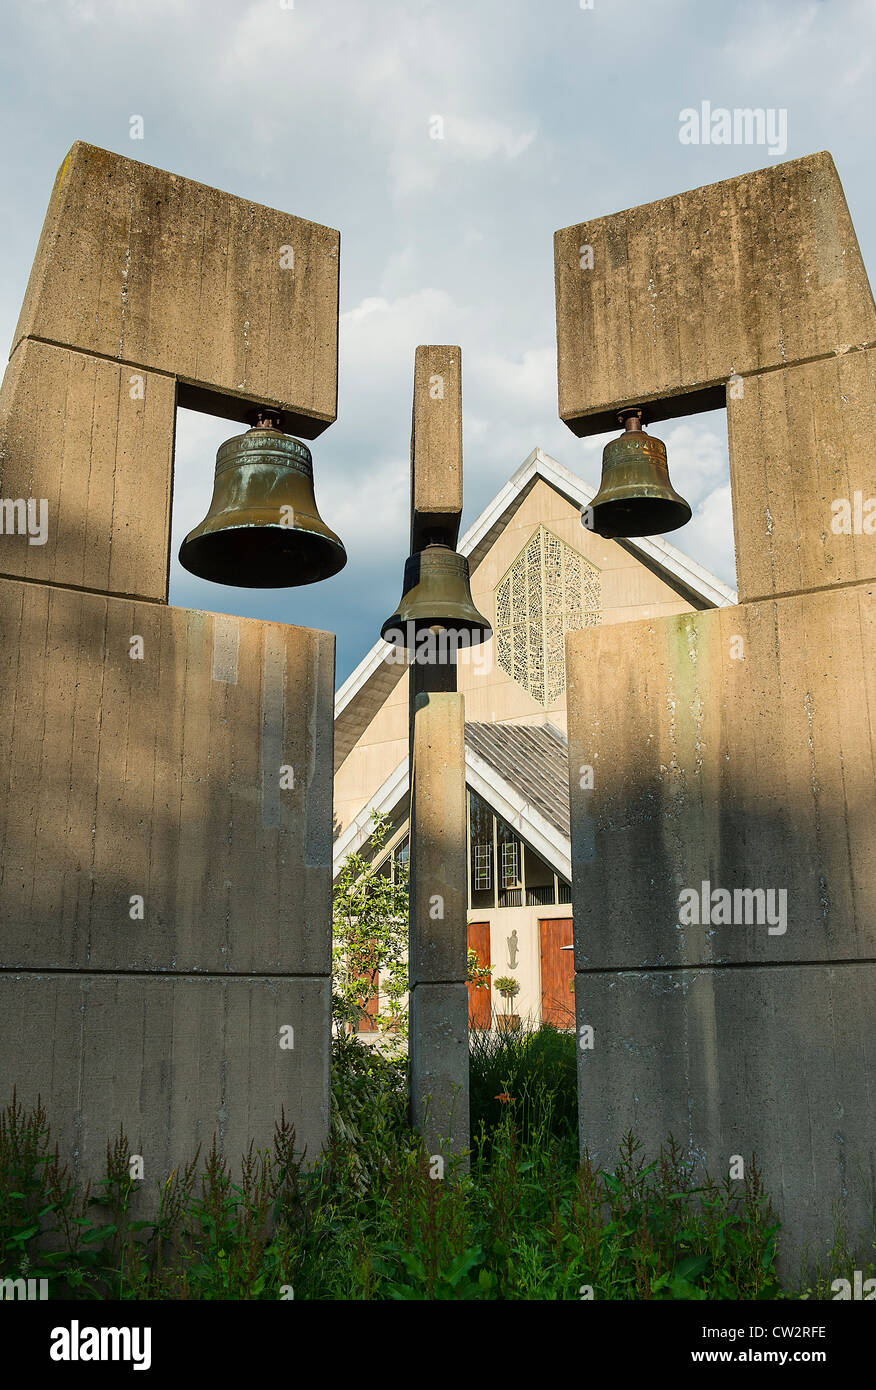 Church bell tower. - Stock Image